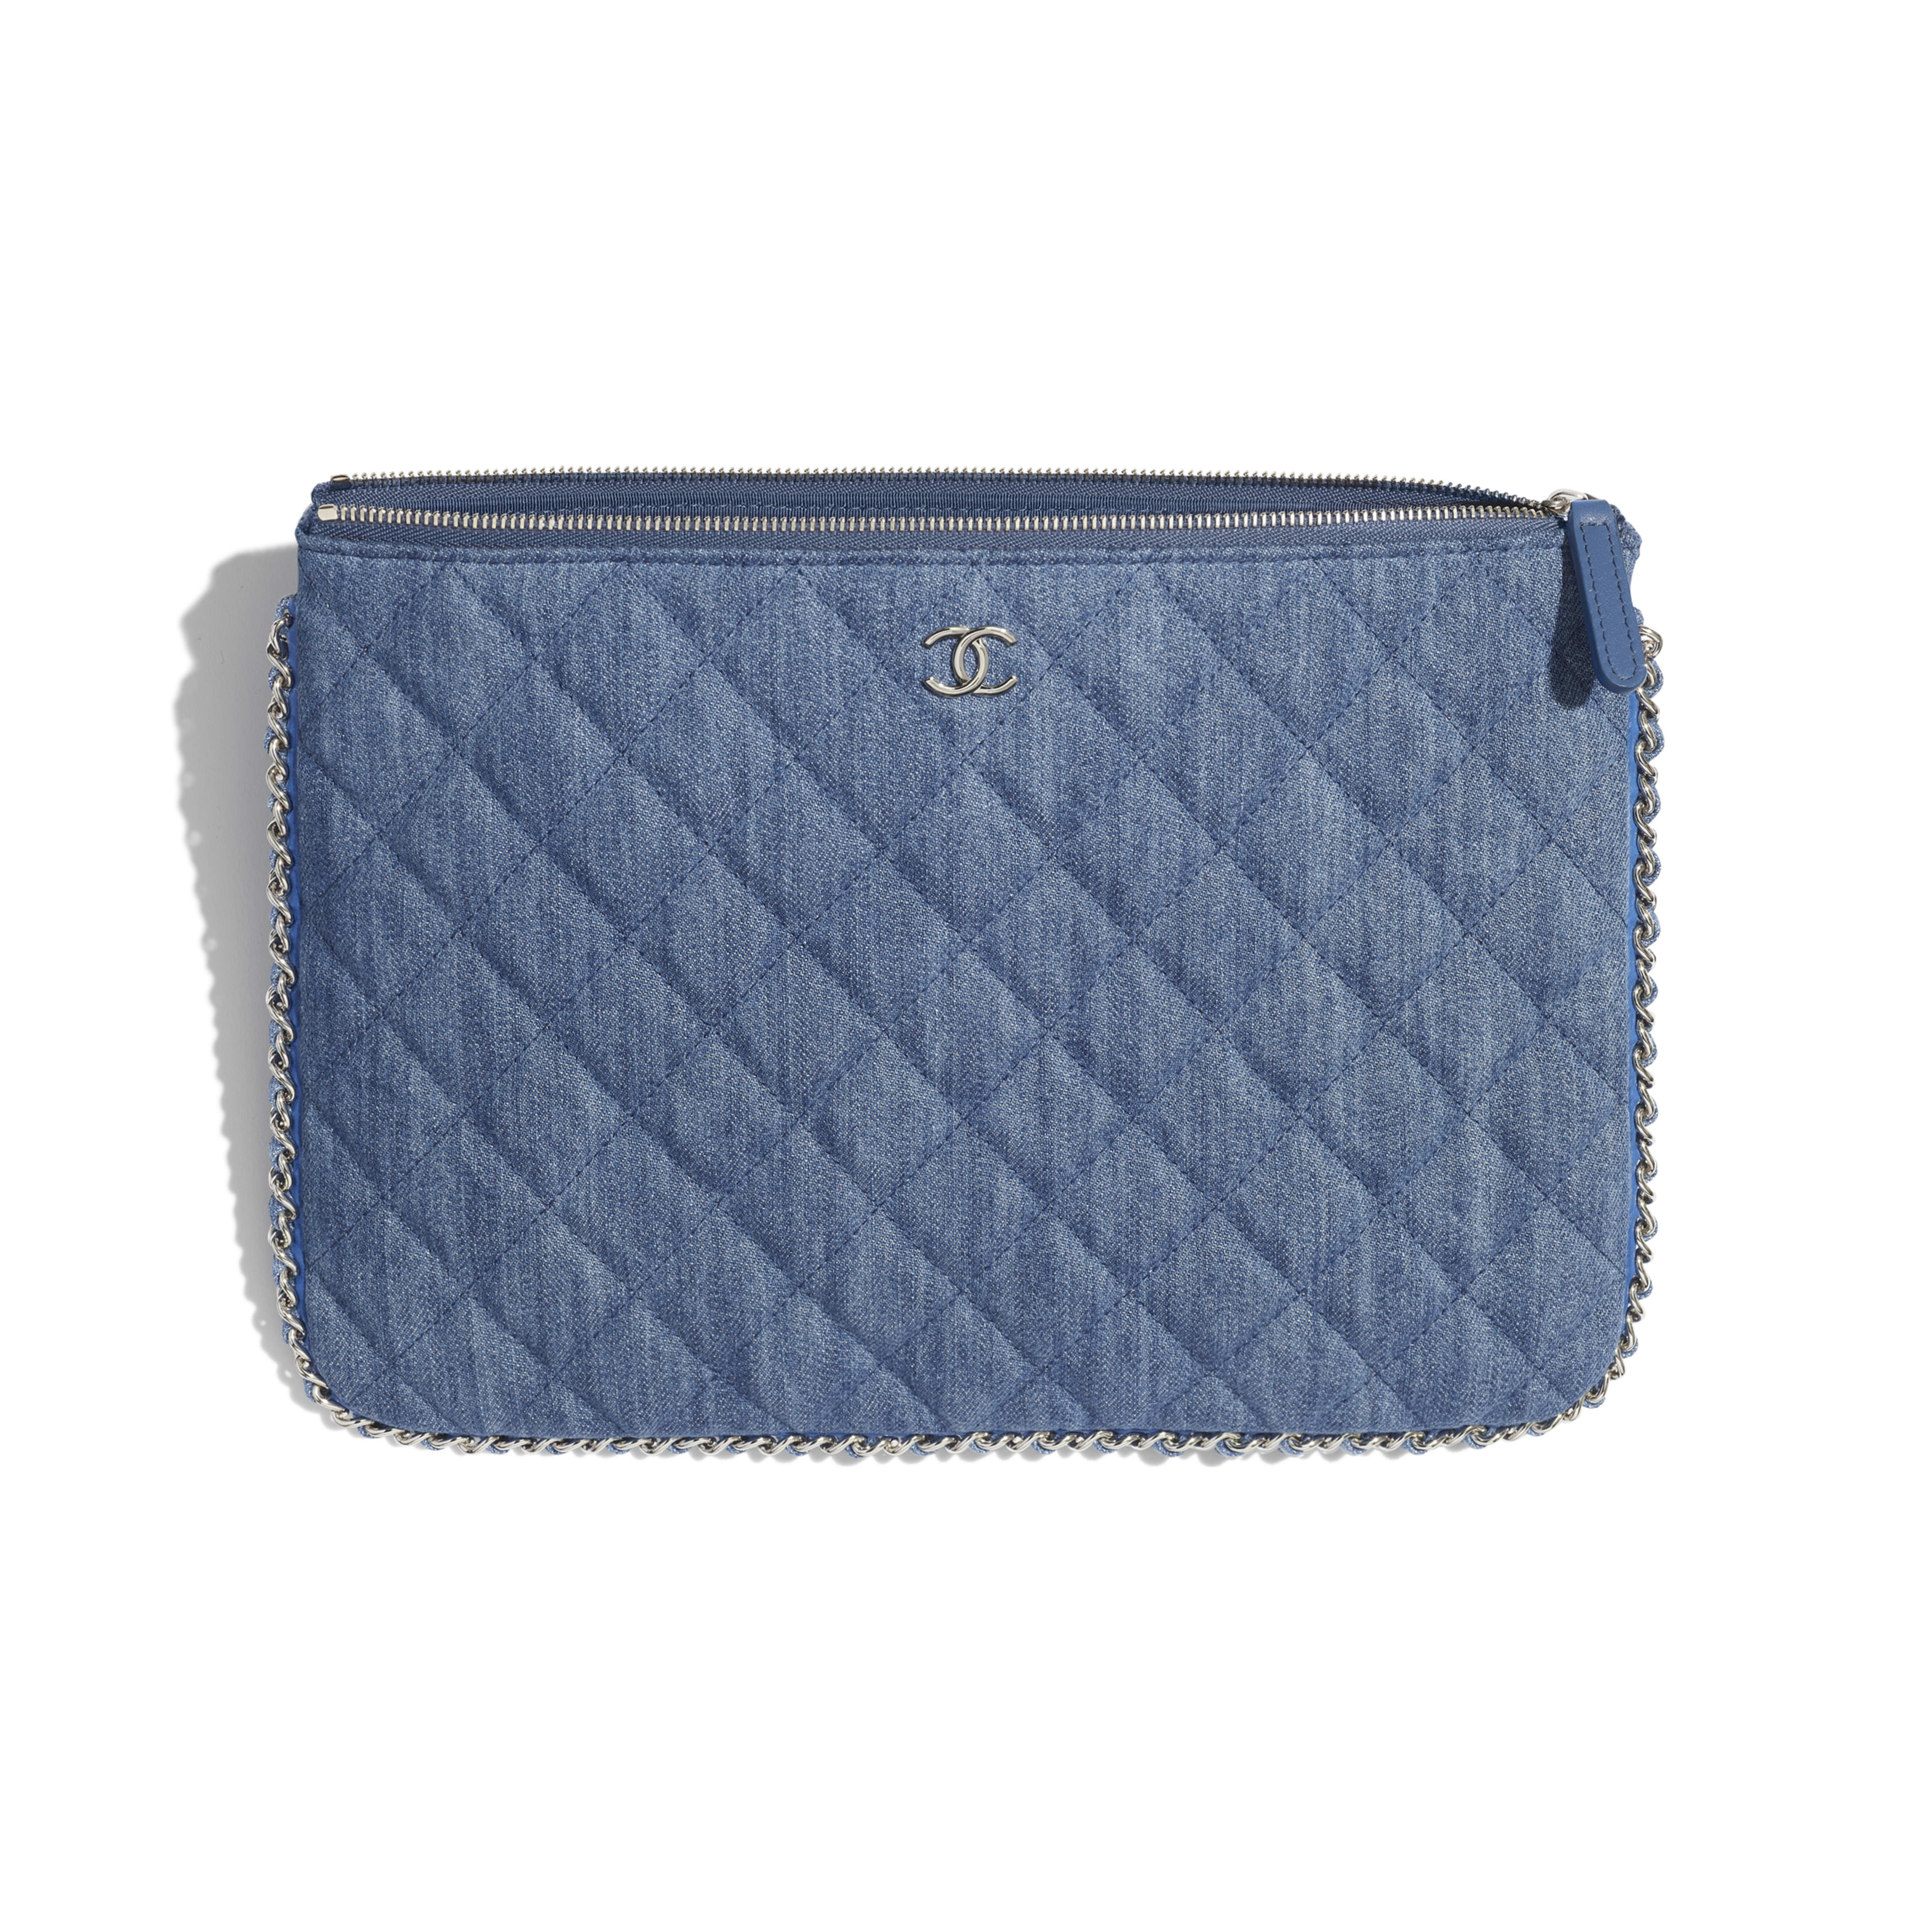 Pouch - Blue - Denim, Chain & Silver-Tone Metal - Other view - see full sized version